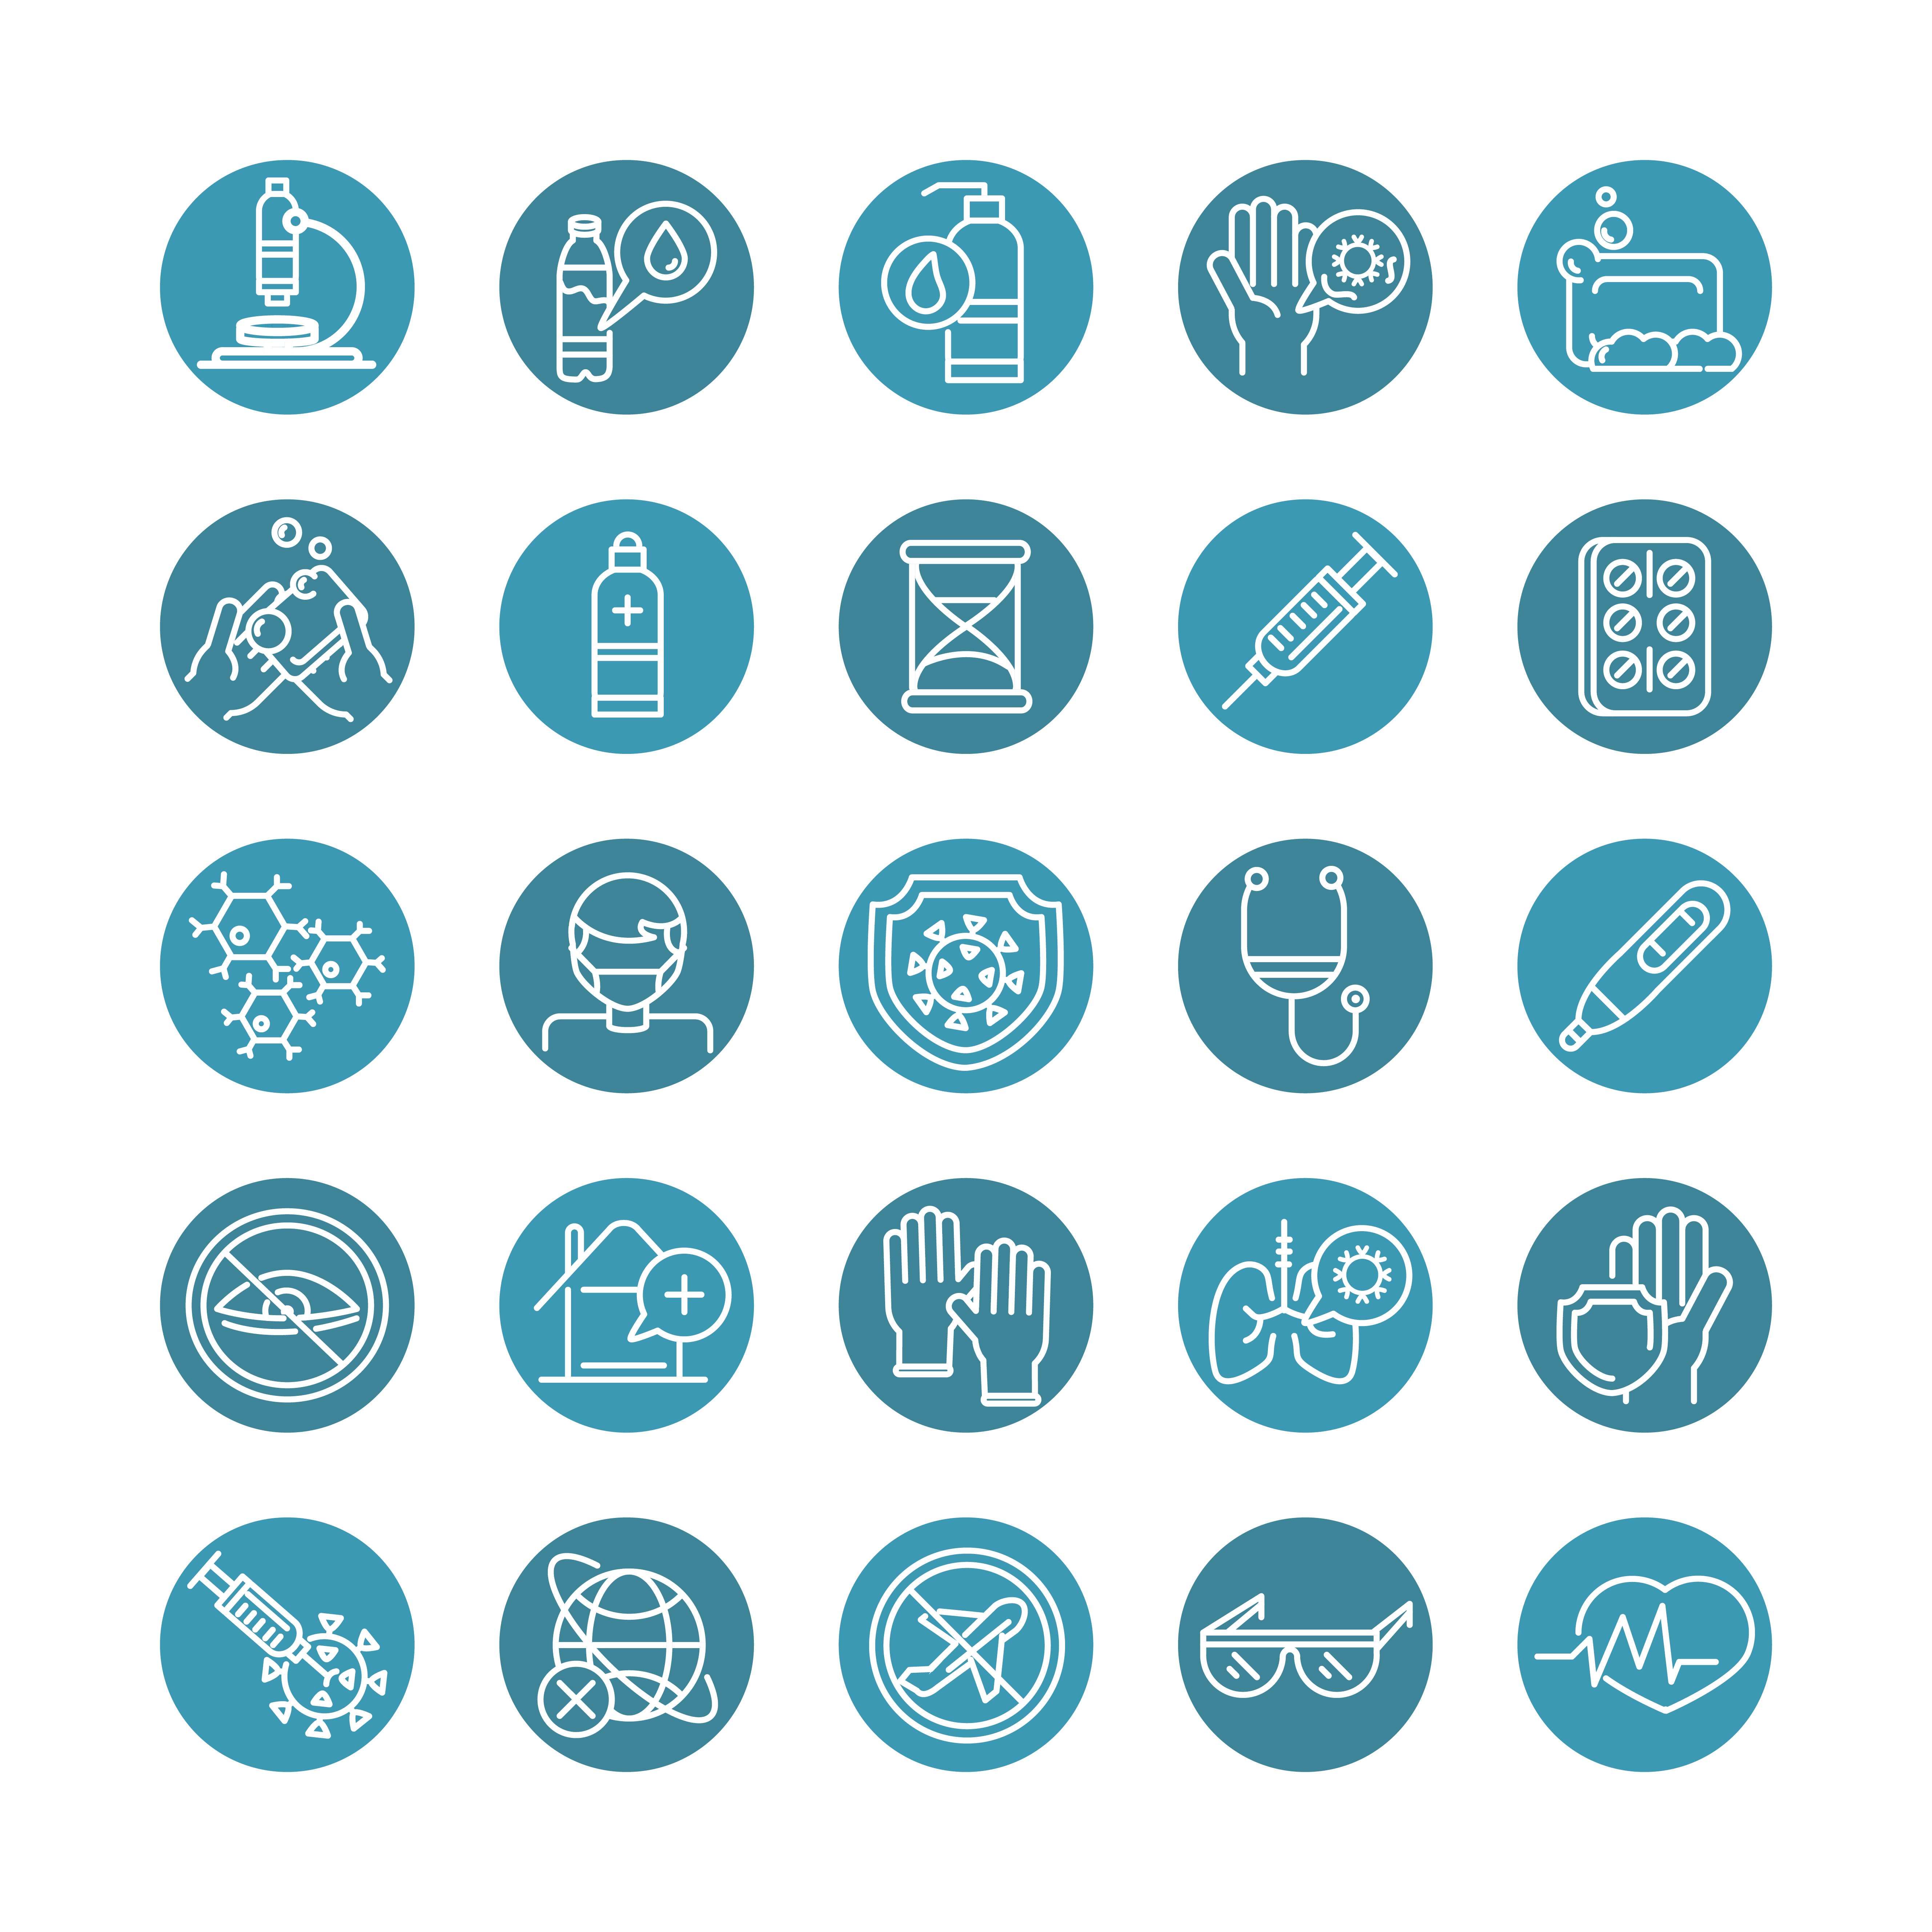 Medical related icon set